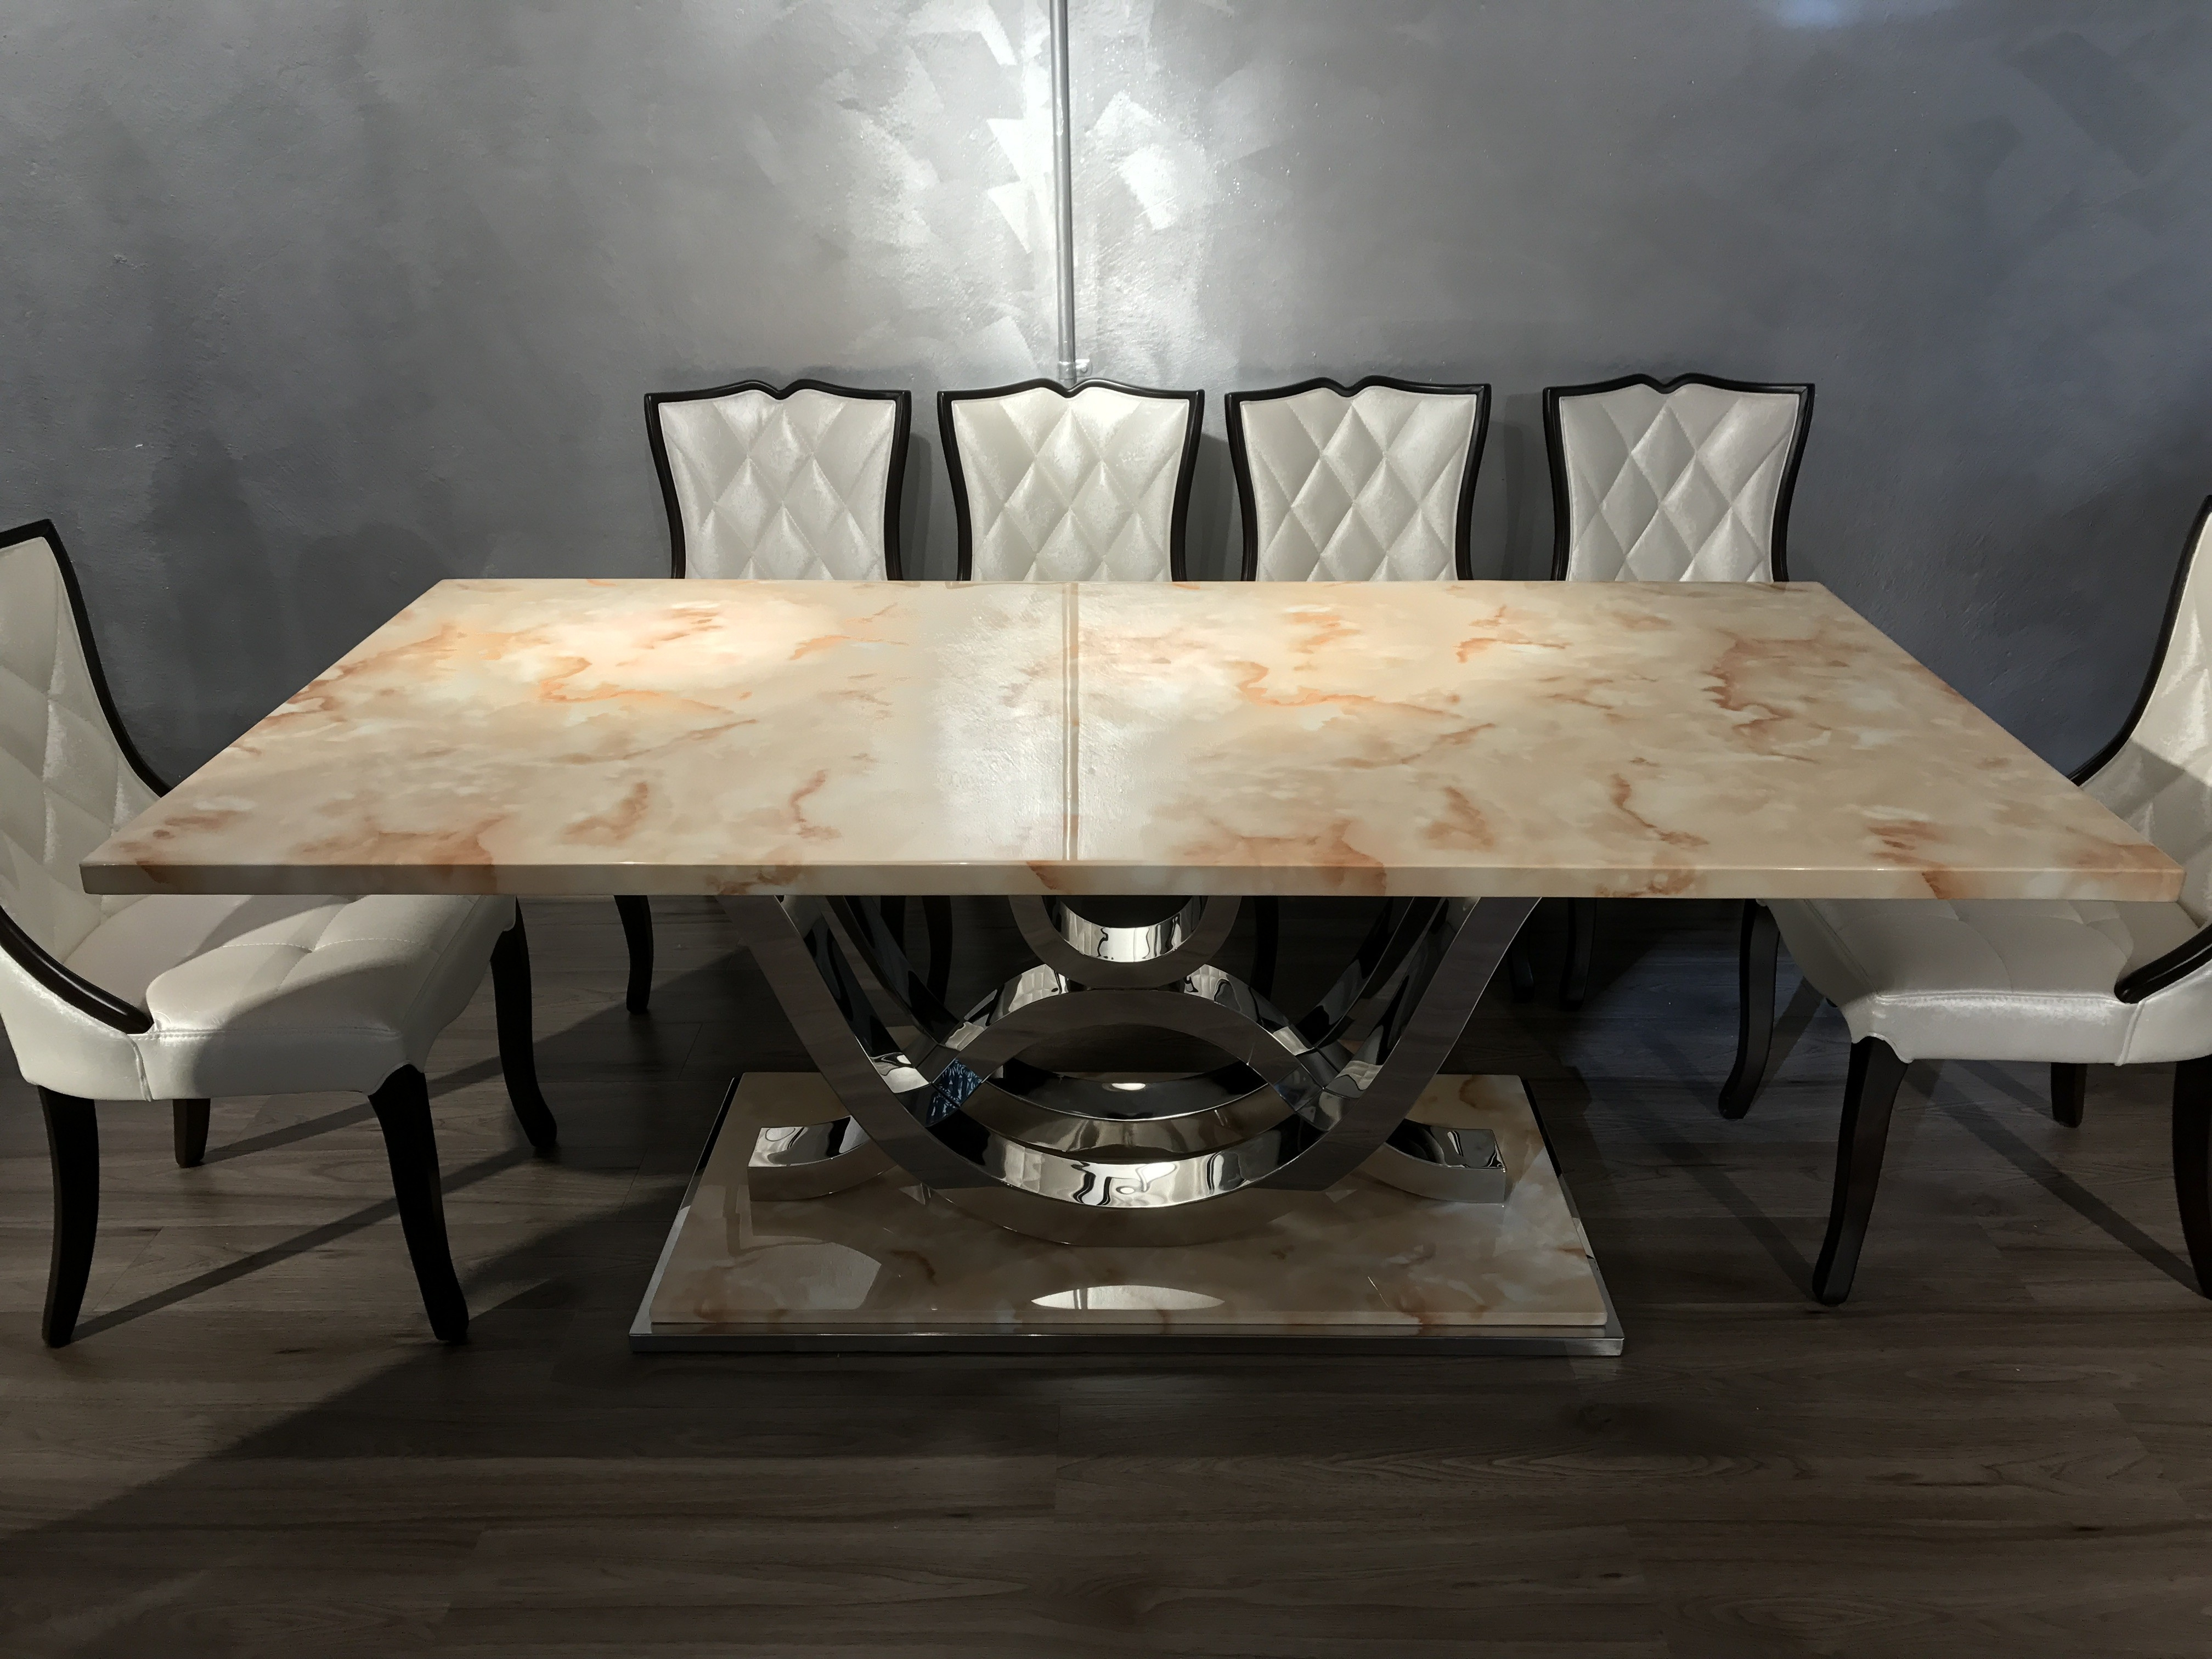 Marbella Dining Tables With Regard To Newest Marbella Marble Dining Table – Tables – Living Room (View 16 of 25)